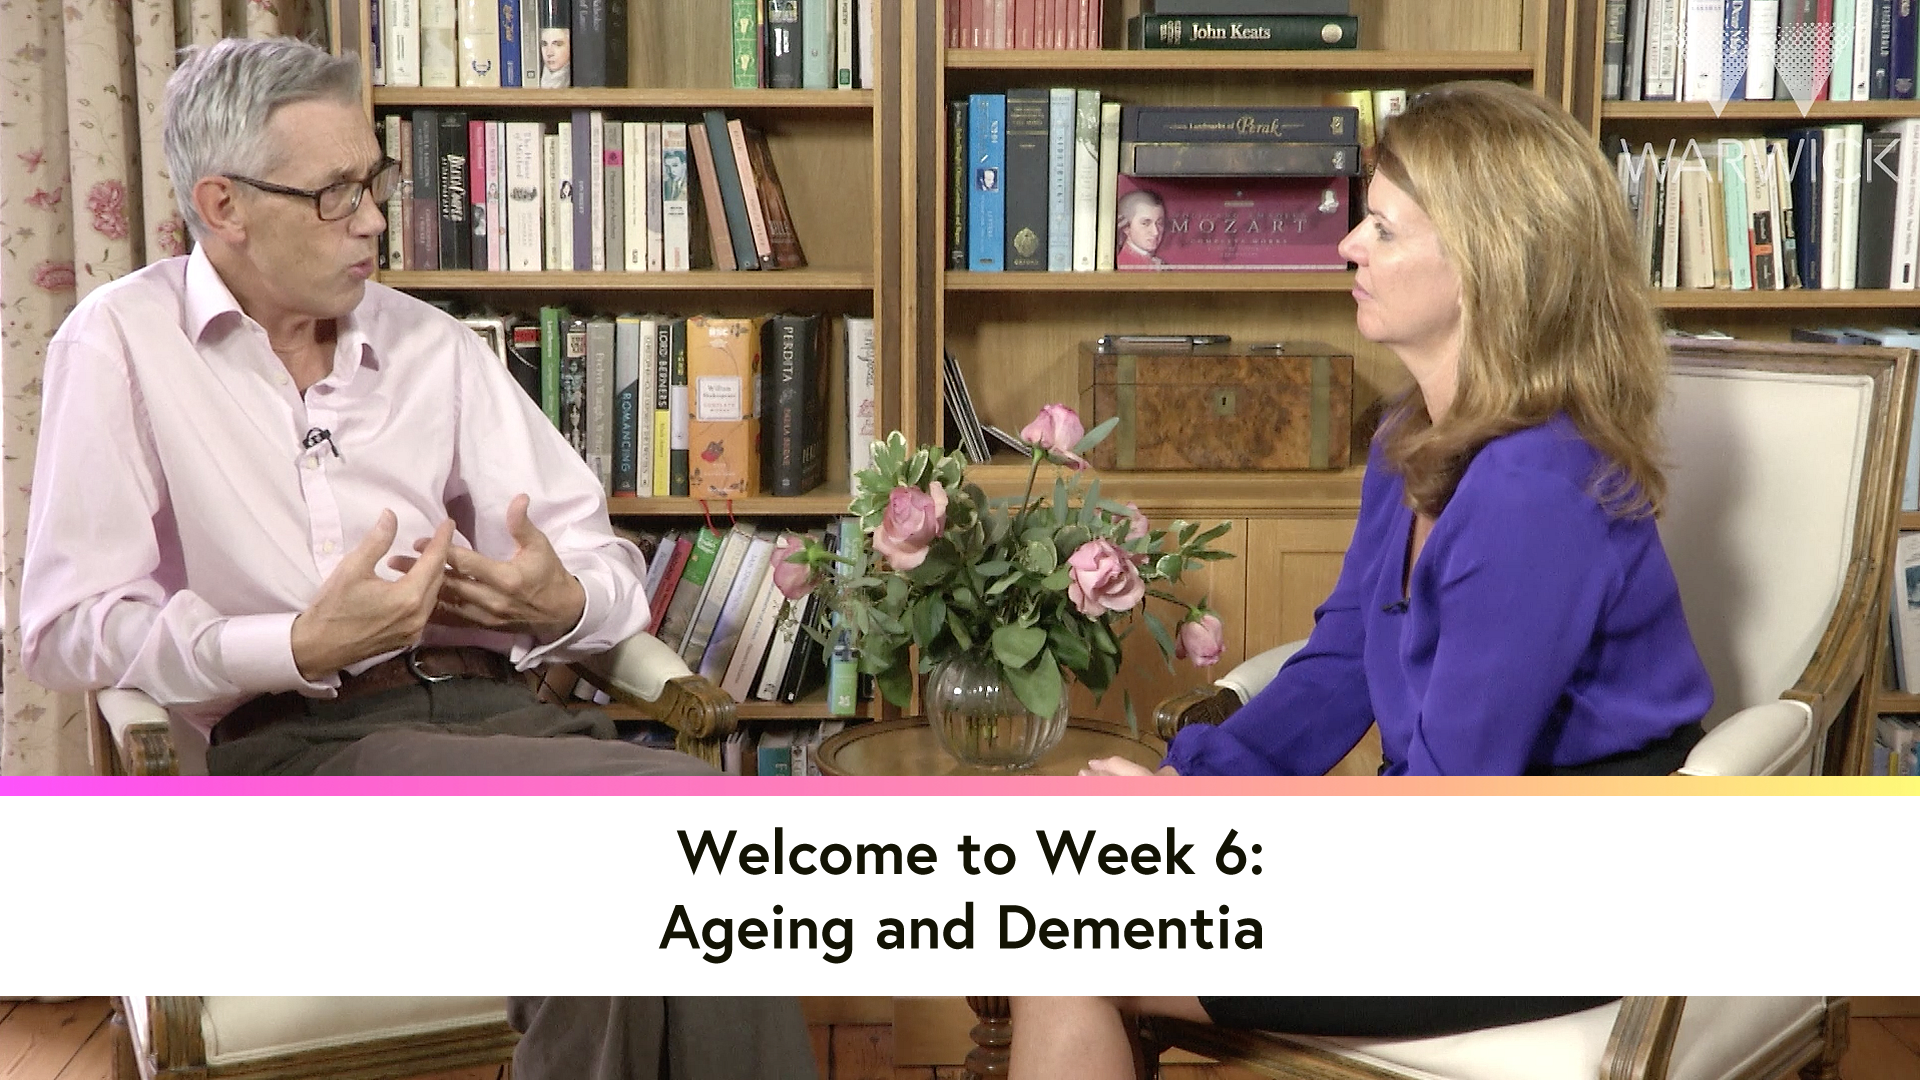 Welcome to Week 6: Ageing and dementia